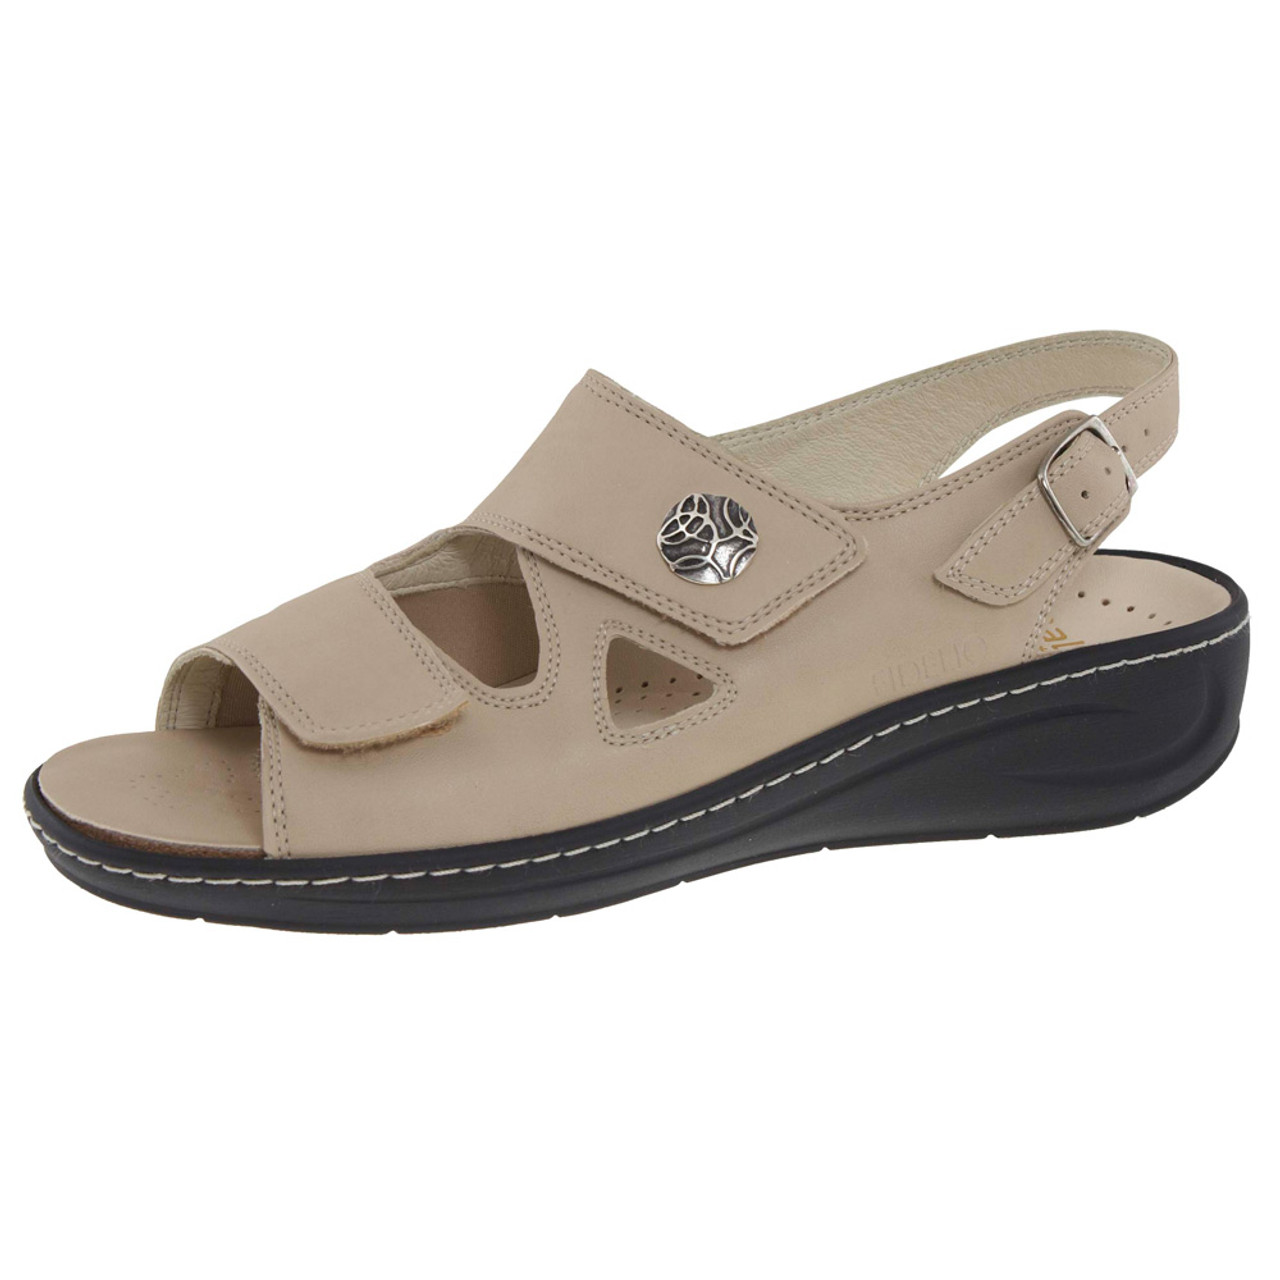 19a16a0043e1c1 Need Bunion Sandals  Fidelio Sandals Are For You!